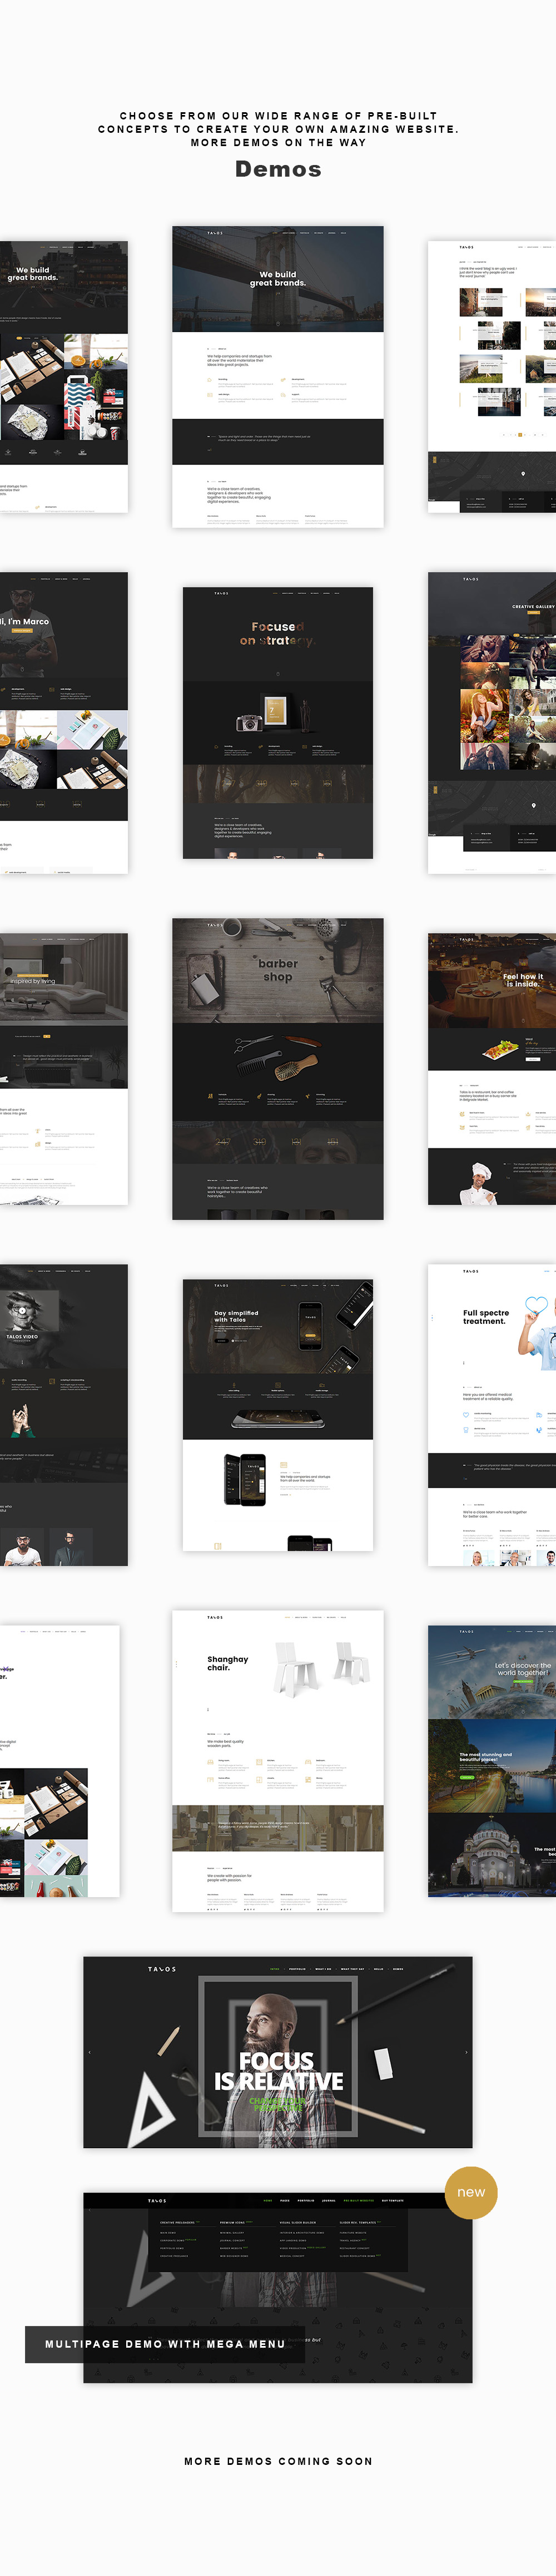 Talos 1 - Creative Multipurpose WordPress Theme